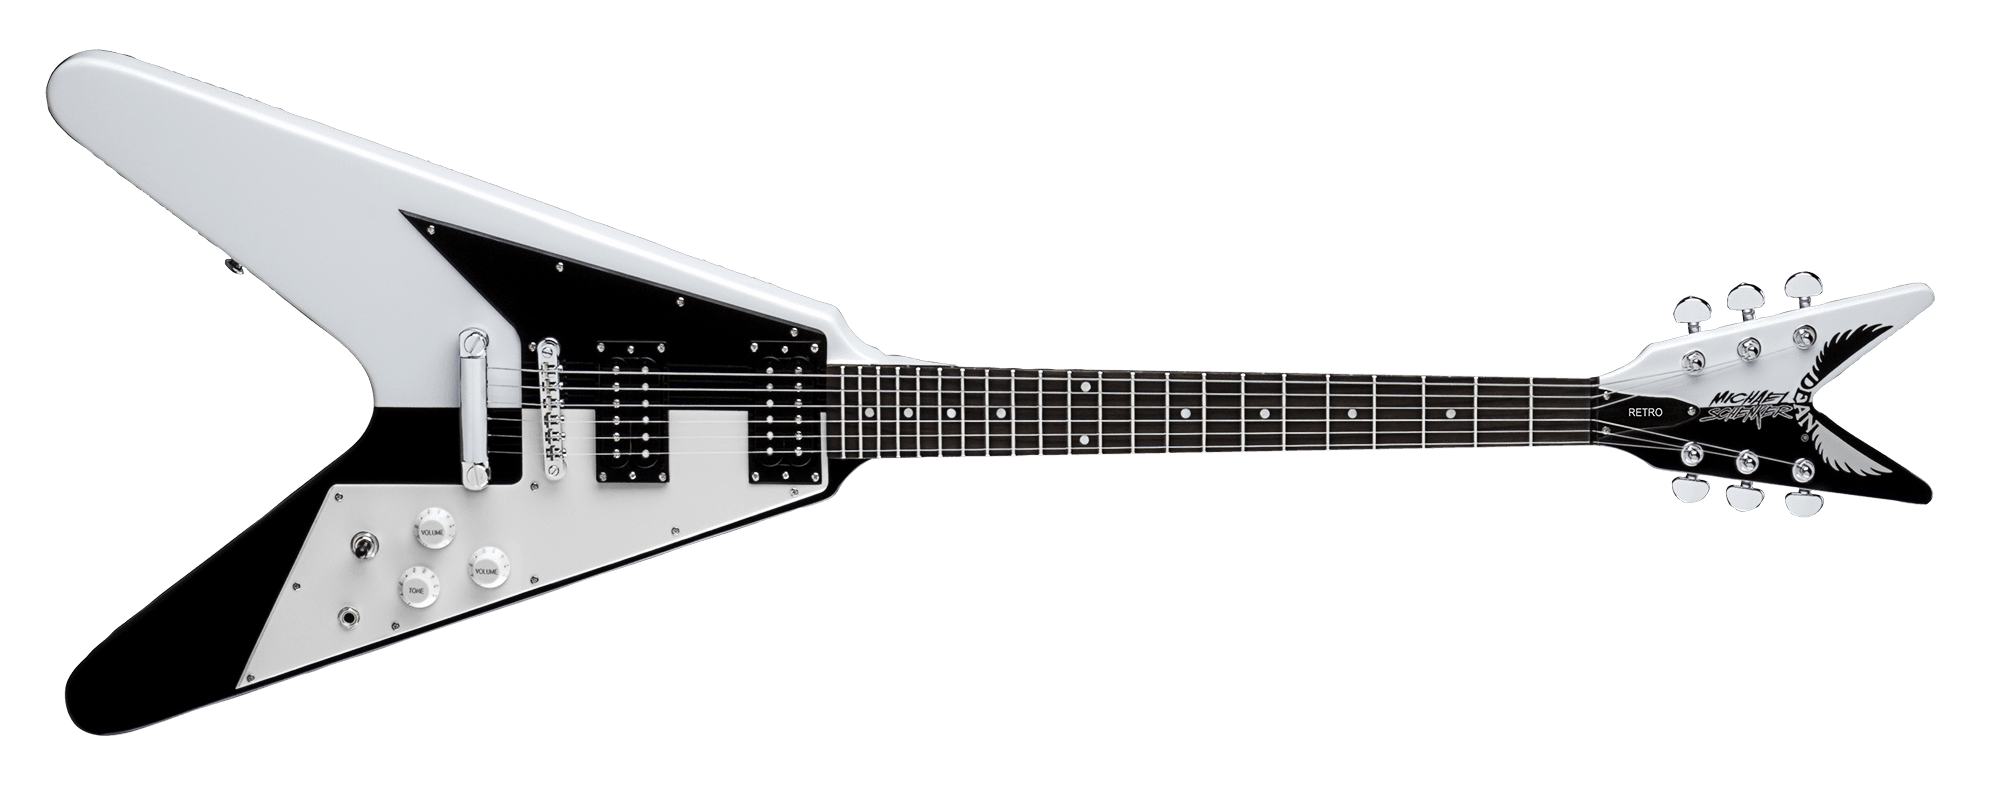 Michael Schenker Retro